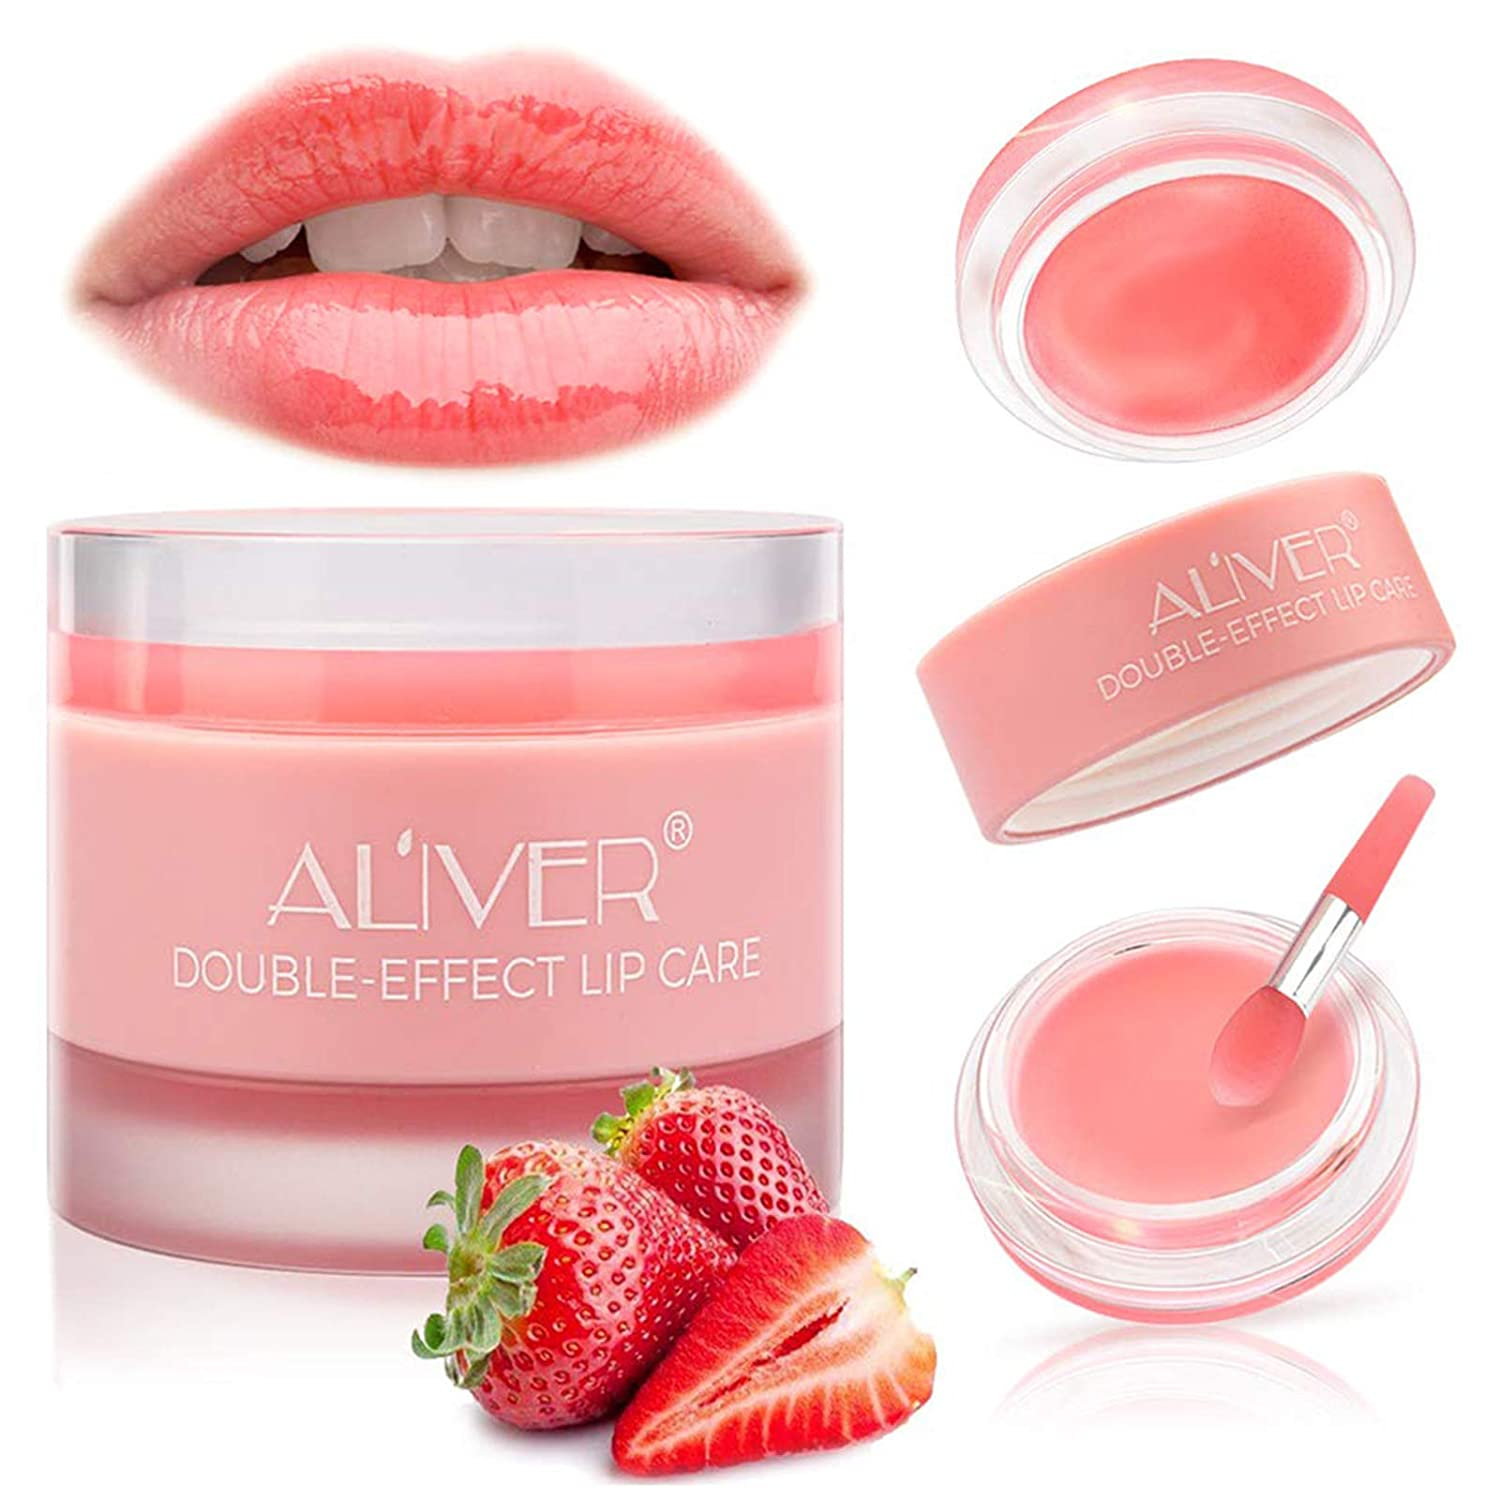 Lip Sleeping Mask, with Lip Scrubs Exfoliator & Moisturizer, Double Effect Lip Mask Overnight for Dry, Lip Masks Treatment Care, Cracked Lips, Peeling Lip Primer, Lip Repair Balm - Strawberry : Beauty